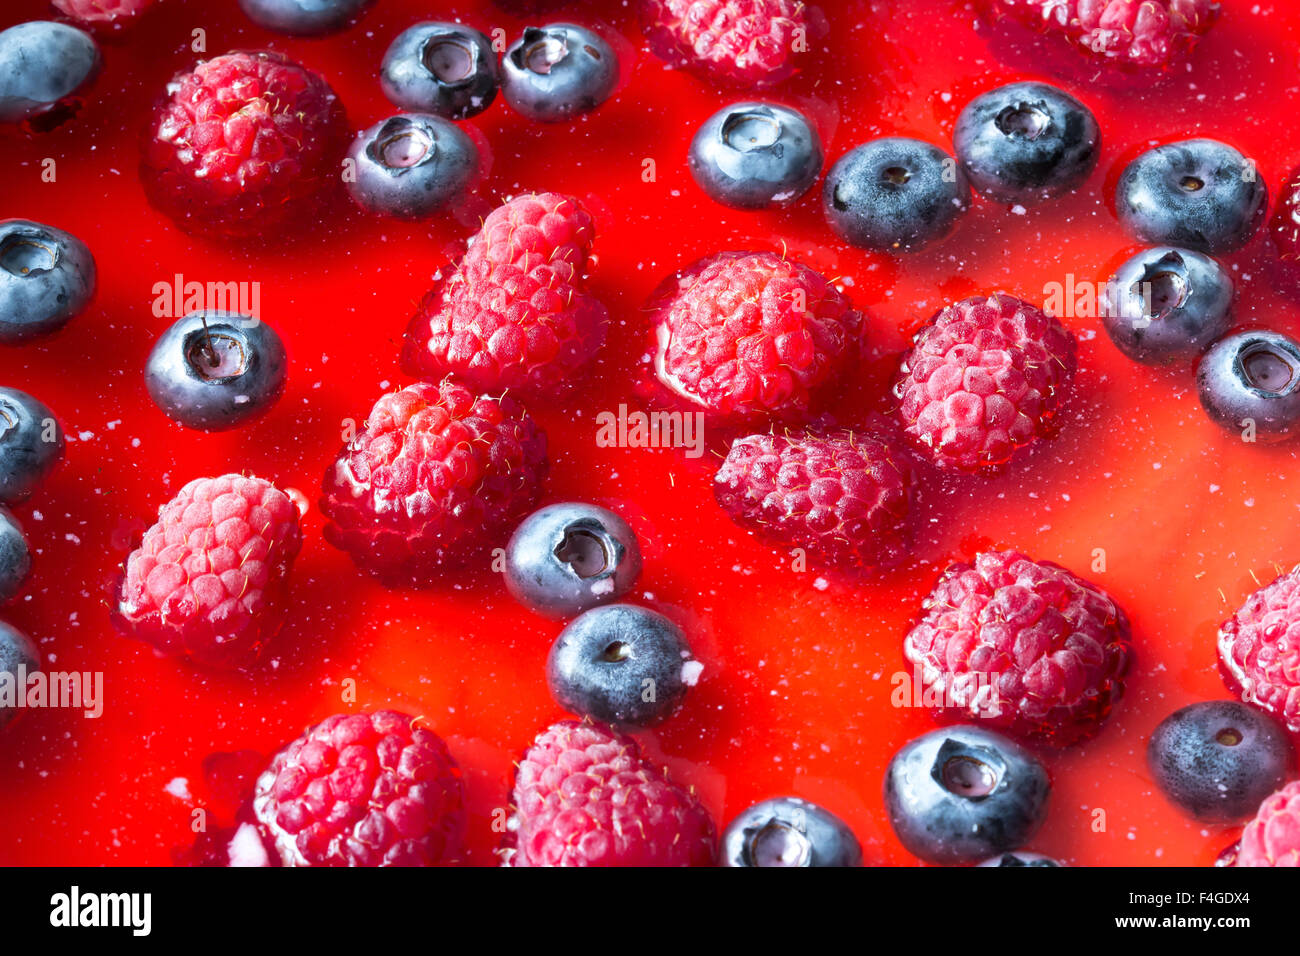 Cheesecake with the fresh raspberries and blueberries - Stock Image